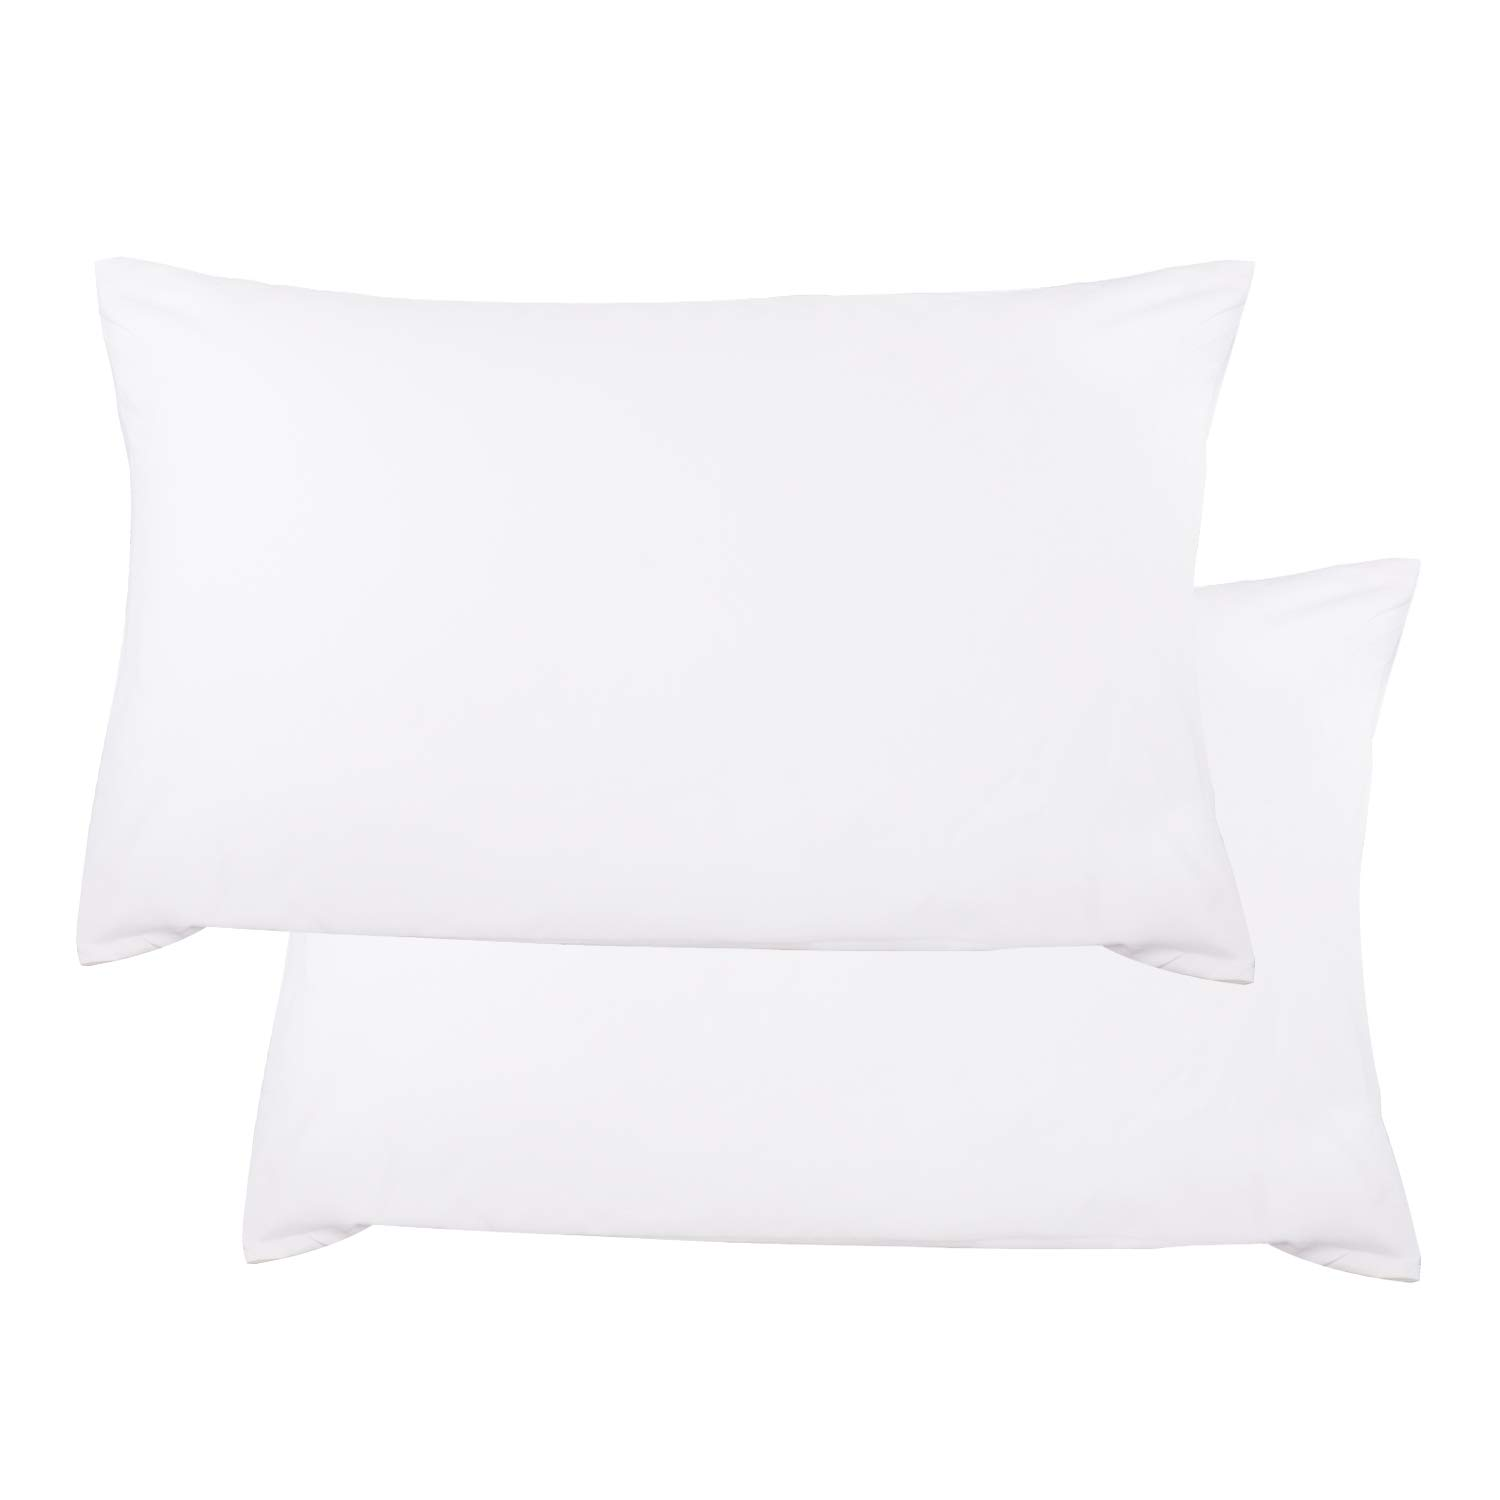 Sunnest 2 Queen Size Pillowcases Ultra Soft 100% Brushed Microfiber, 30'' x 20'', White